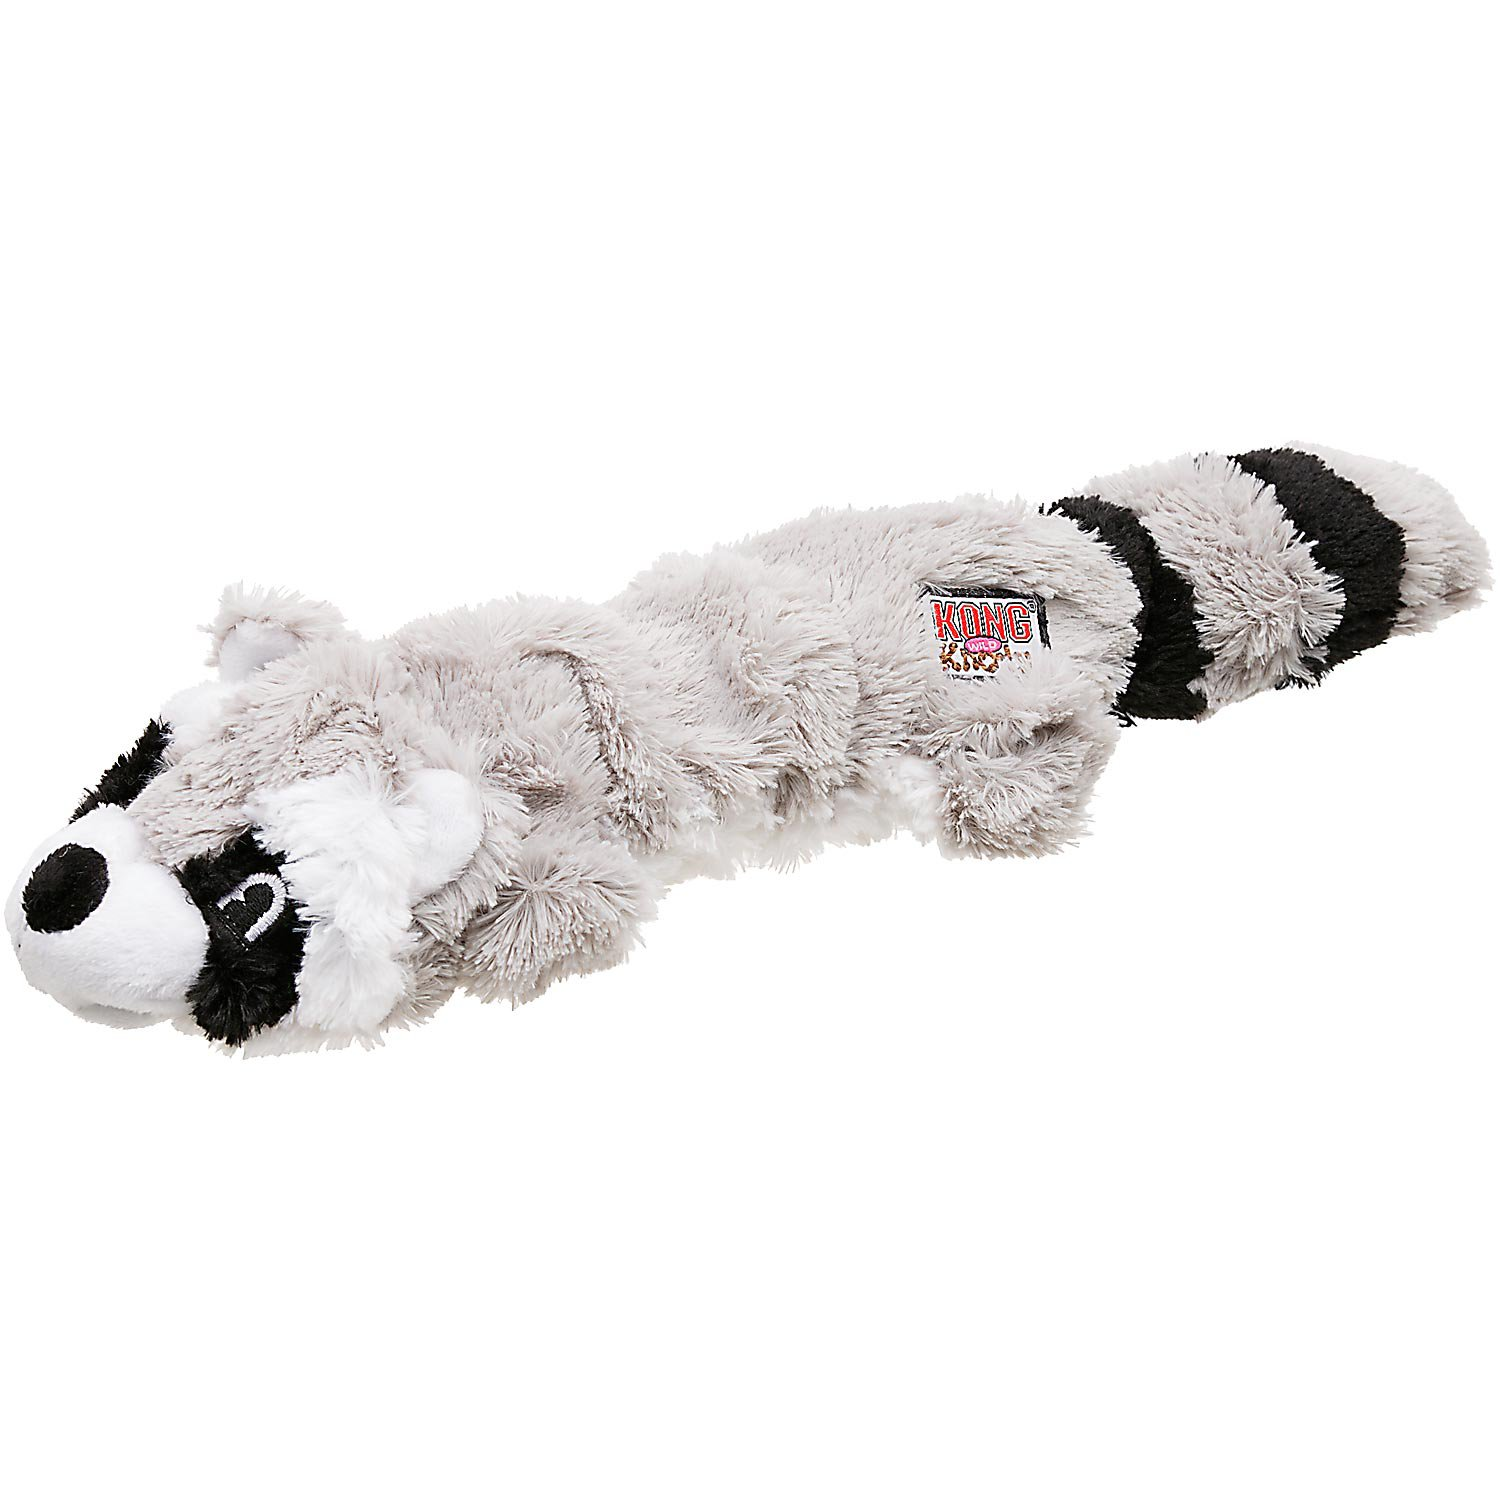 The Snuggle Puppy Is Perfect For When You Are Bringing Your Puppy